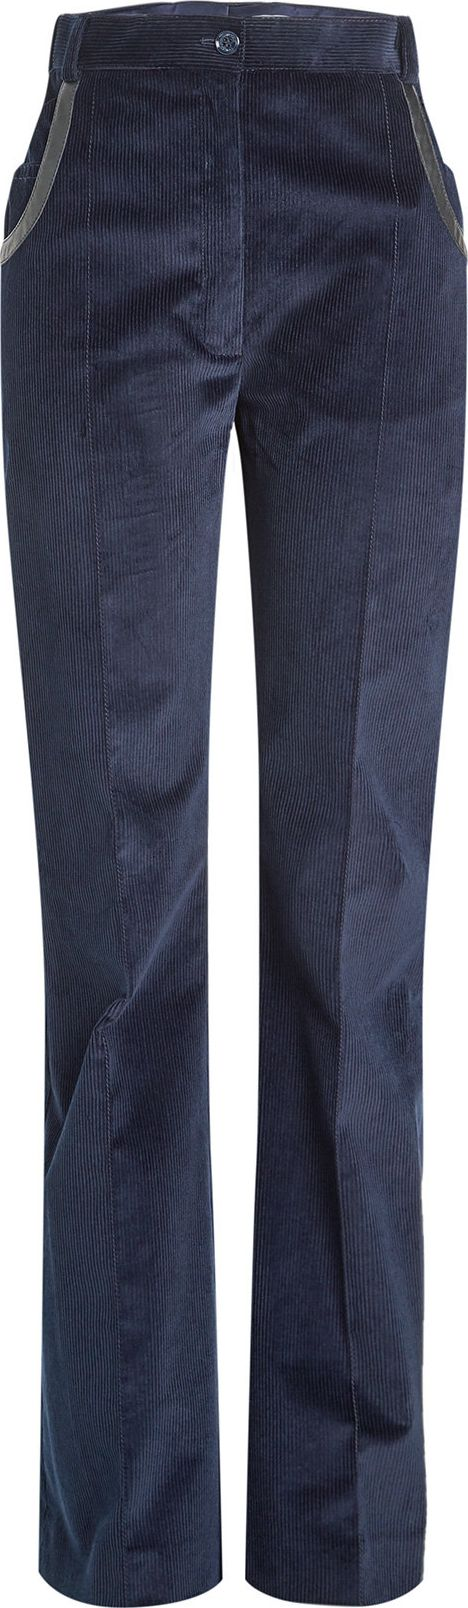 Nina Ricci - Corduroy Pants with Leather Trim